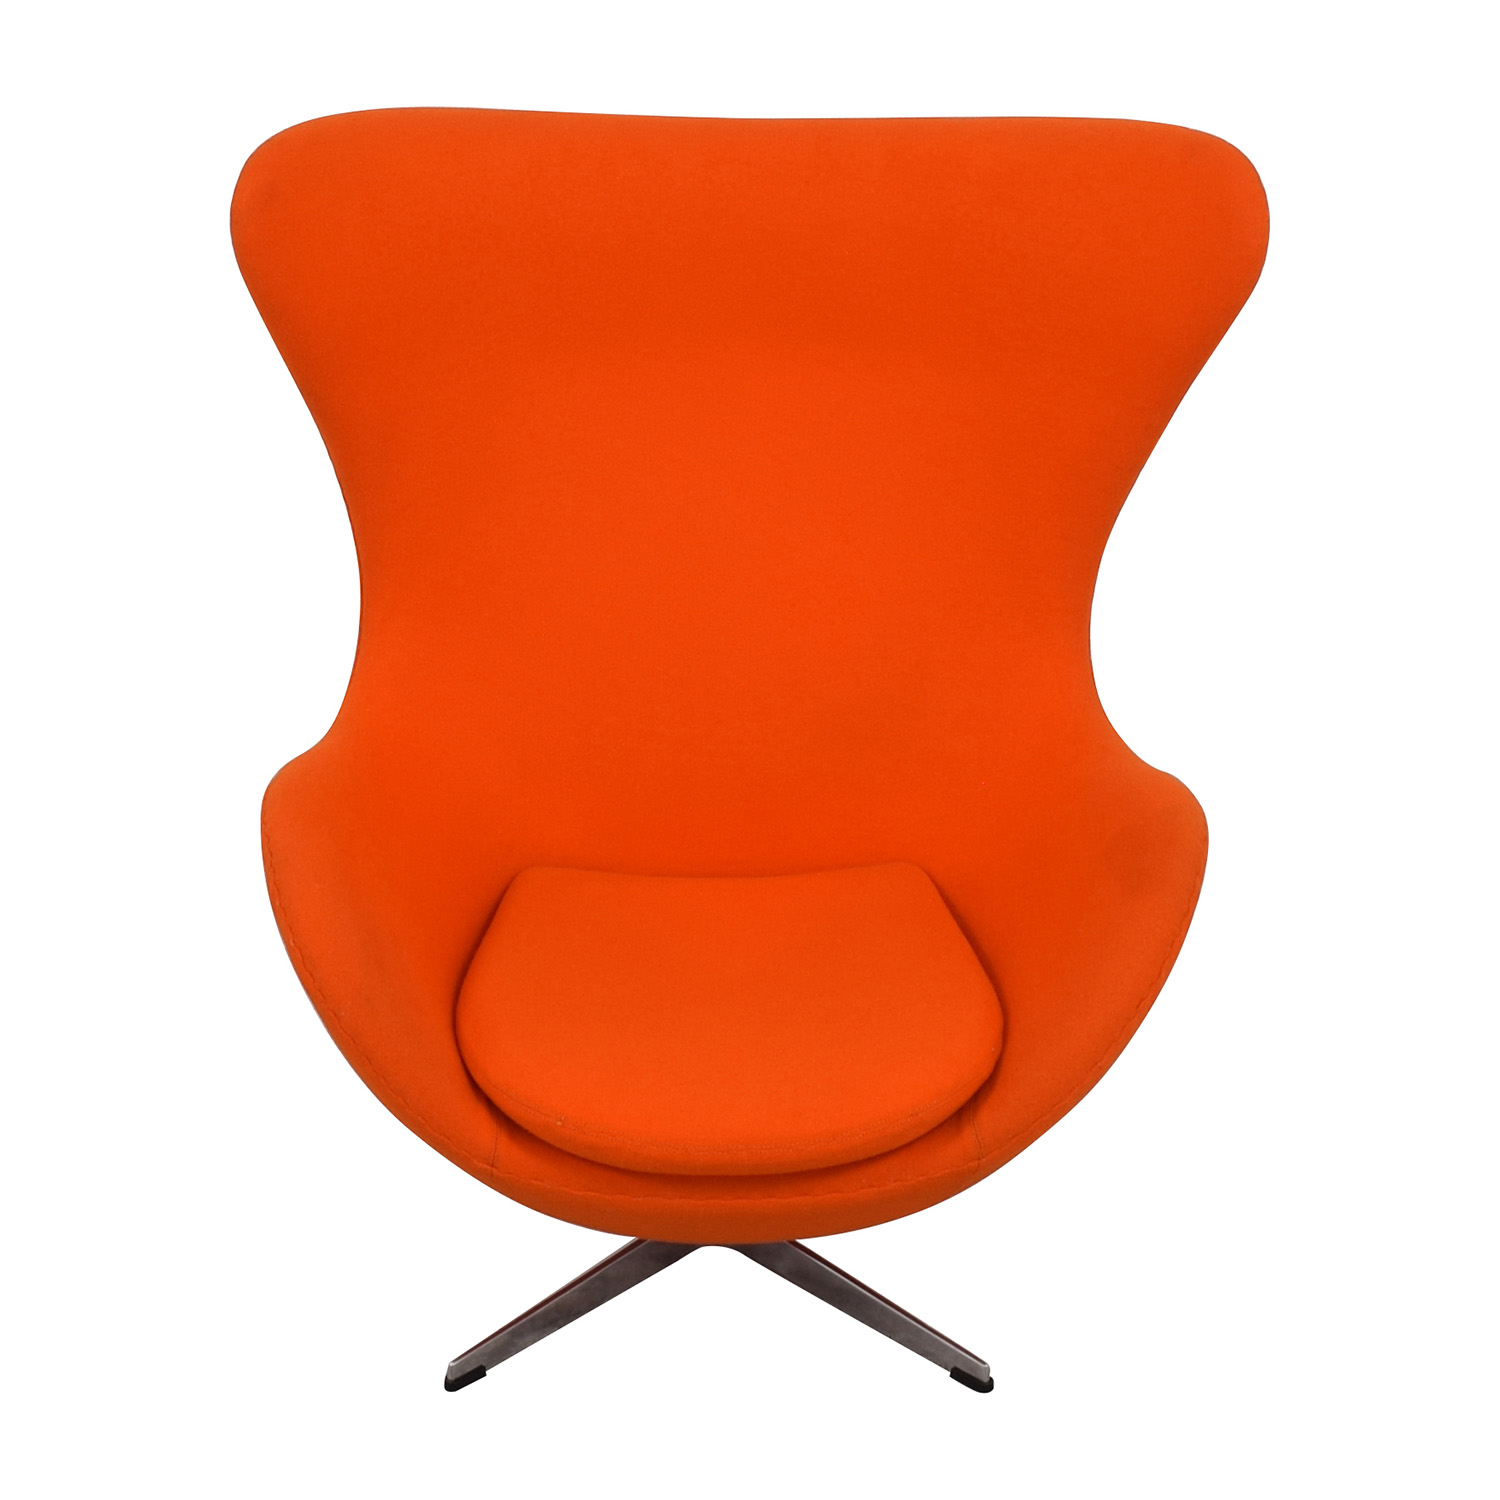 Egg Chair Buy 66 Off Inmod Inmod Jacobsen Orange Egg Chair Chairs